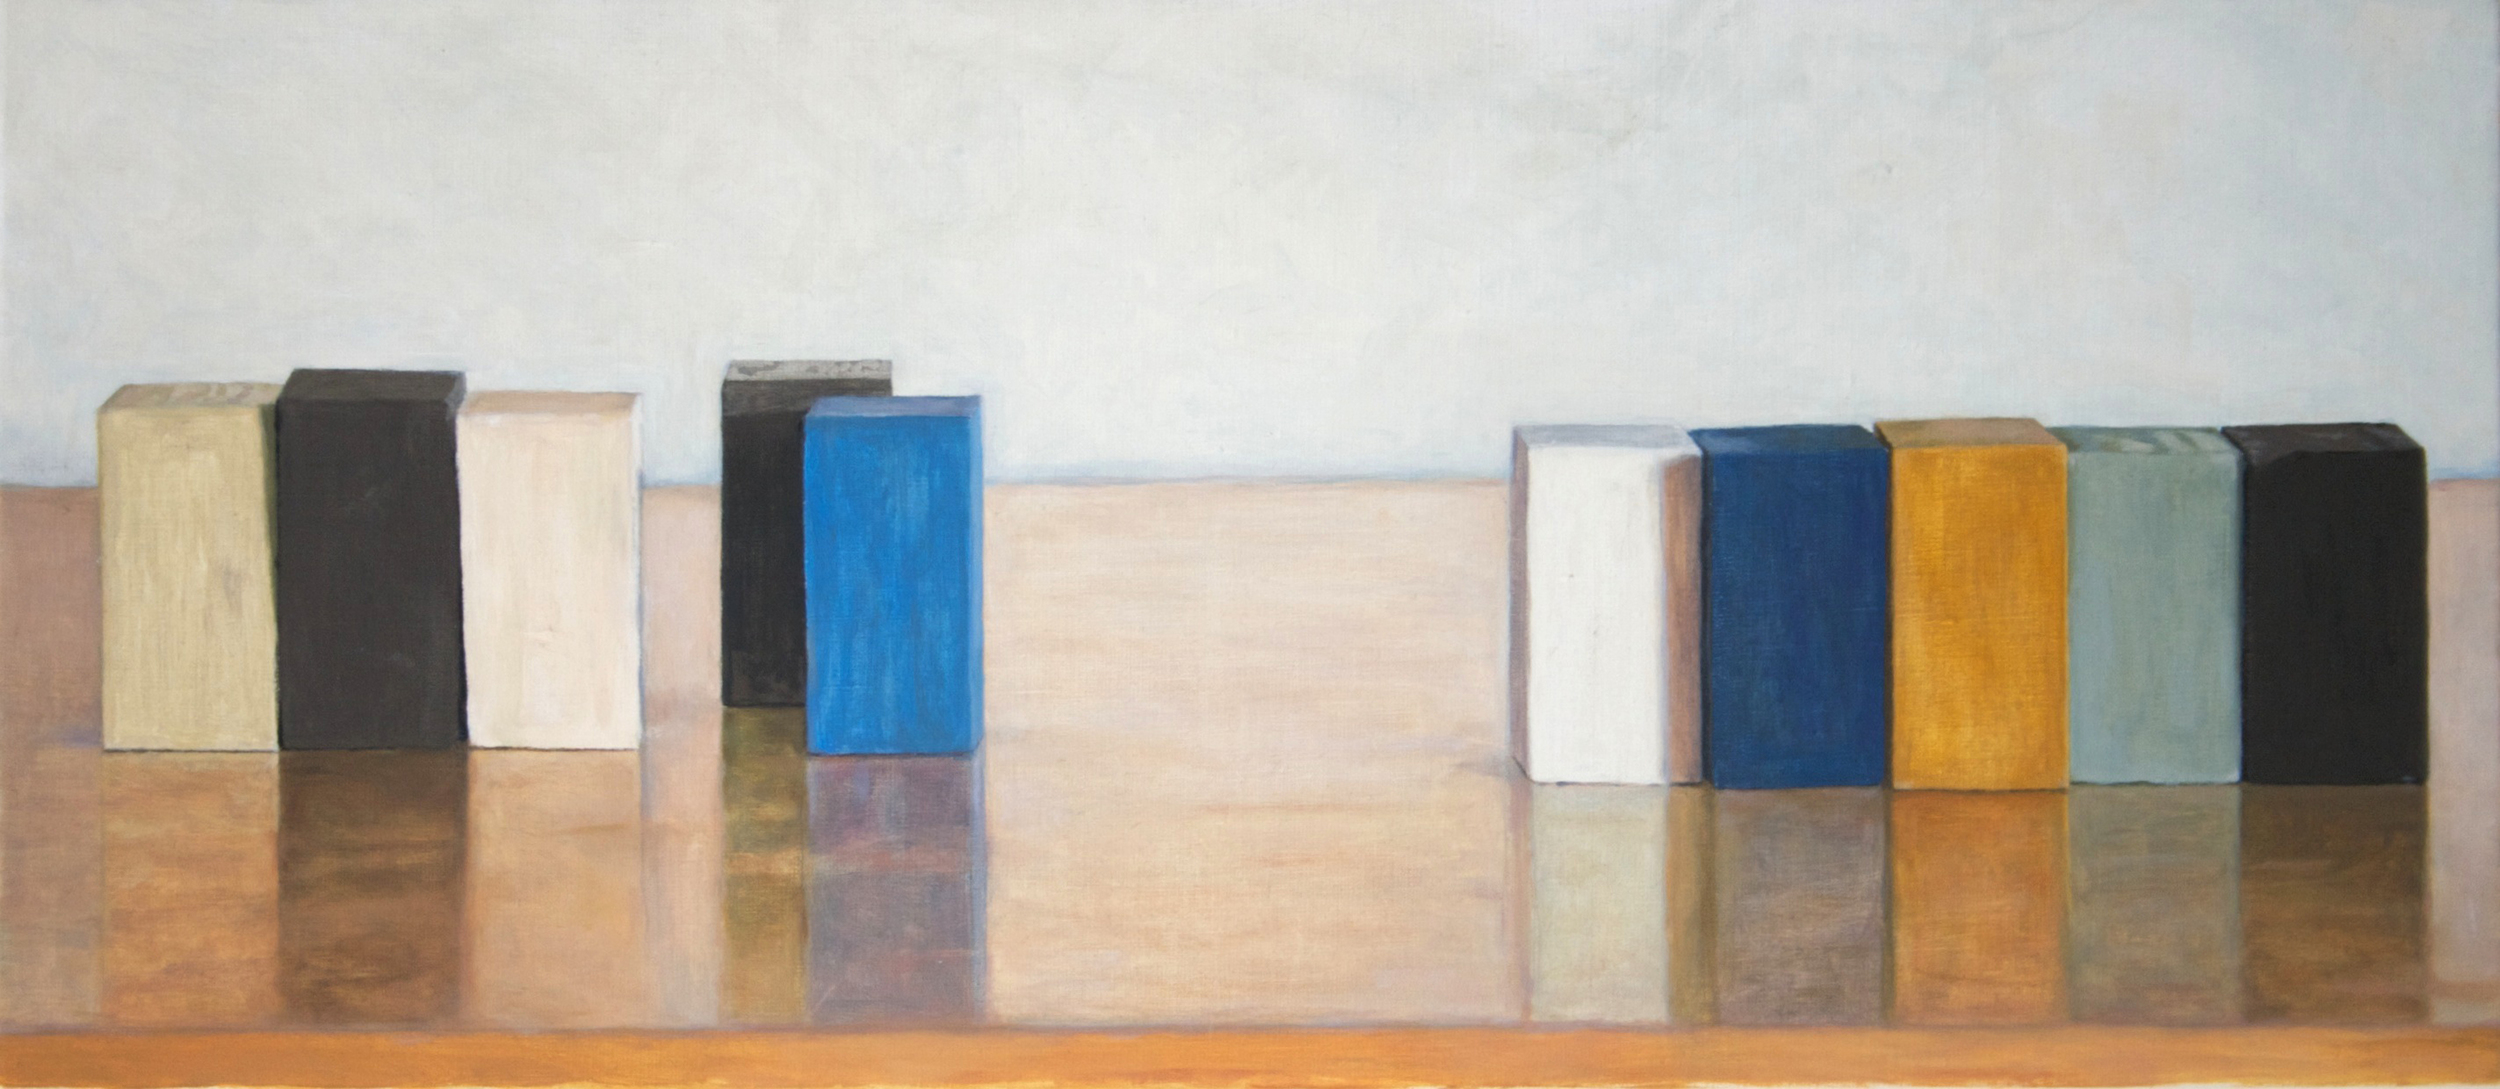 Middle Distance, 2011 Oil on Linen, 14 x 32 inches